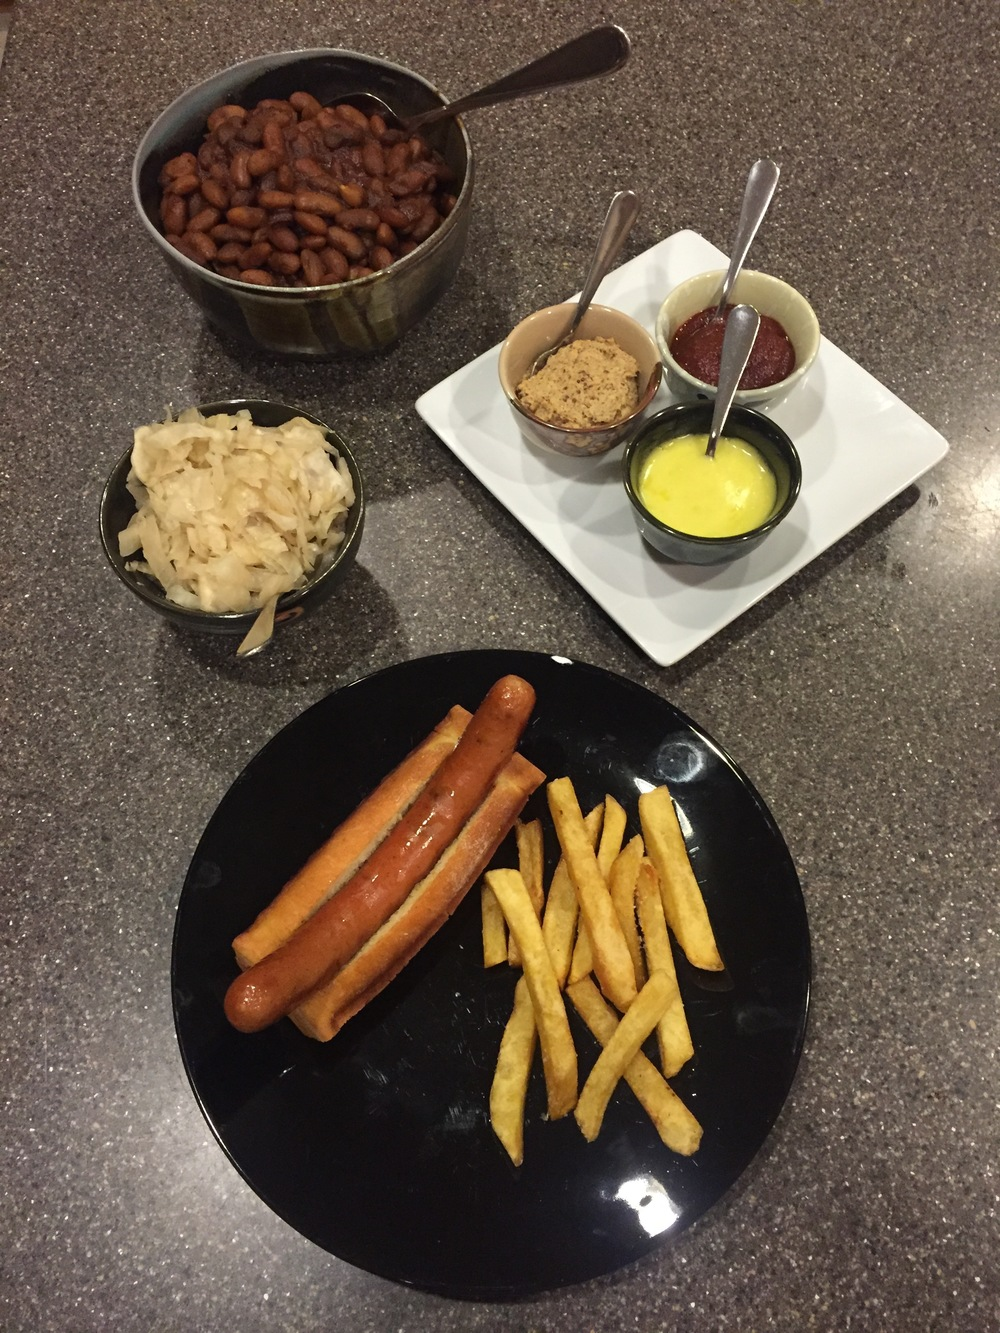 Meal made 100% completely from scratch by Dr. Schindler - hot dog, hot dog bun, french fries, ketchup, mustard, mayo and sauerkraut.  Learn how!!